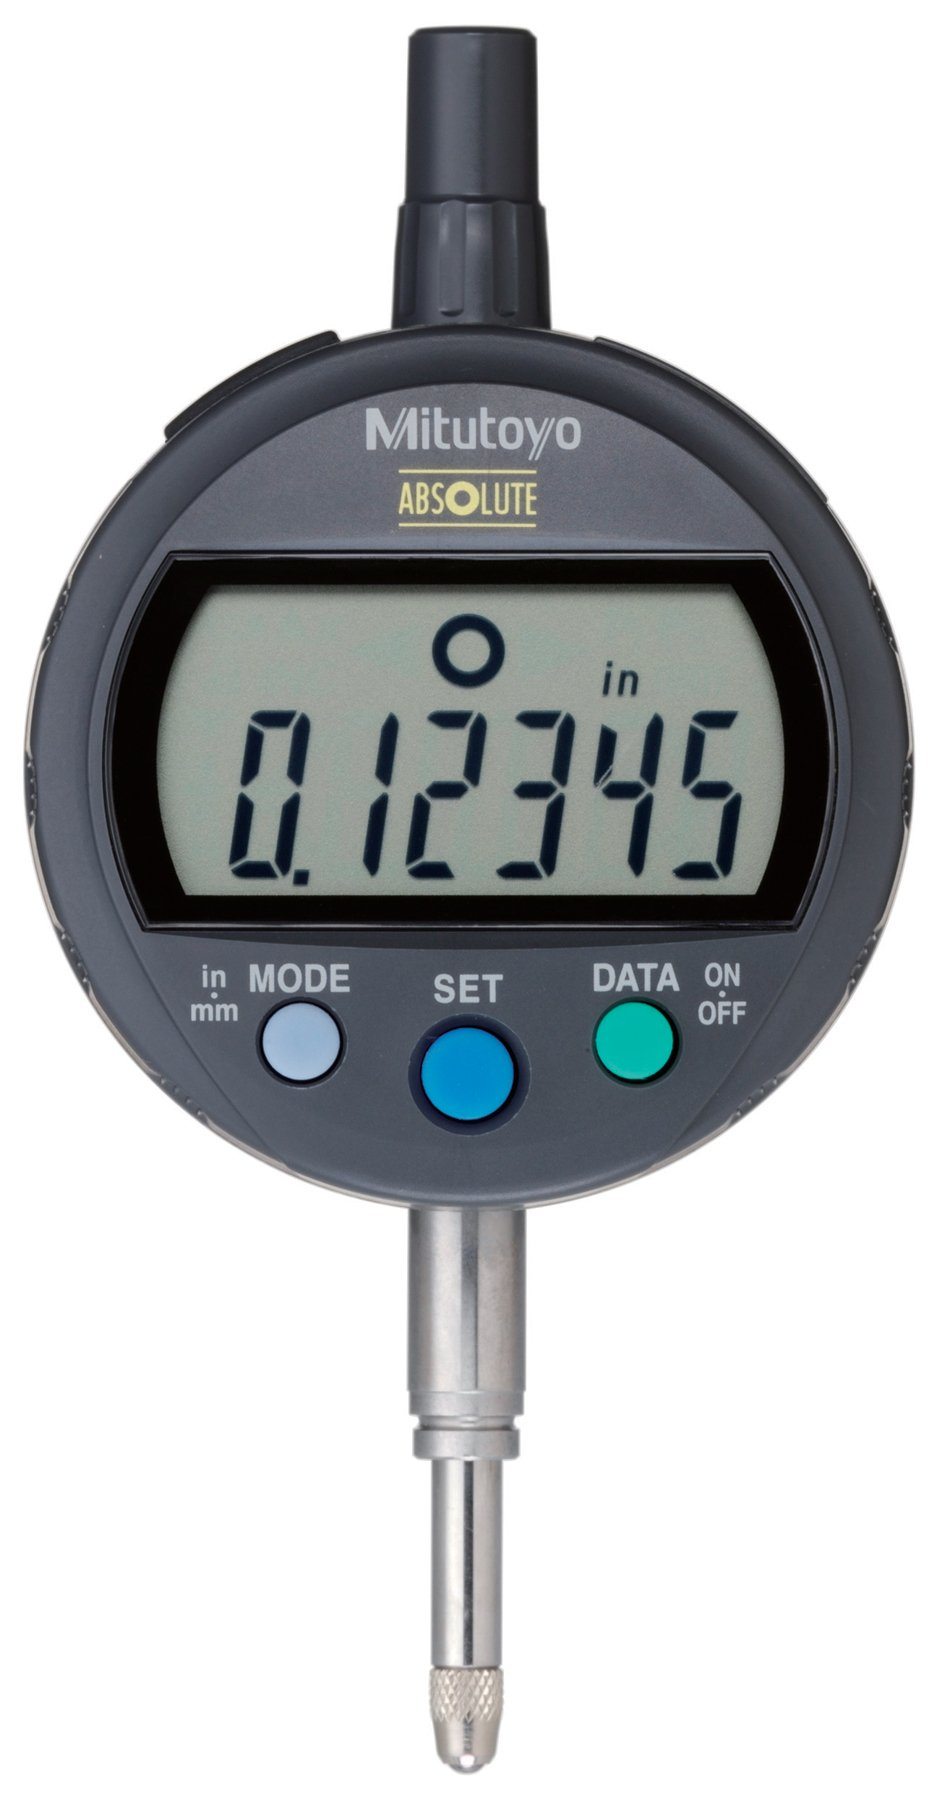 Mitutoyo 543-391B Absolute LCD Digimatic Indicator ID-C, Standard Type, M2.5X0.45 Thread, 8mm Stem Dia., Flat Back, 0-0.5''/0-12.7mm Range, 0.00005''/0.001mm Graduation, +/-0.0001'' Accuracy